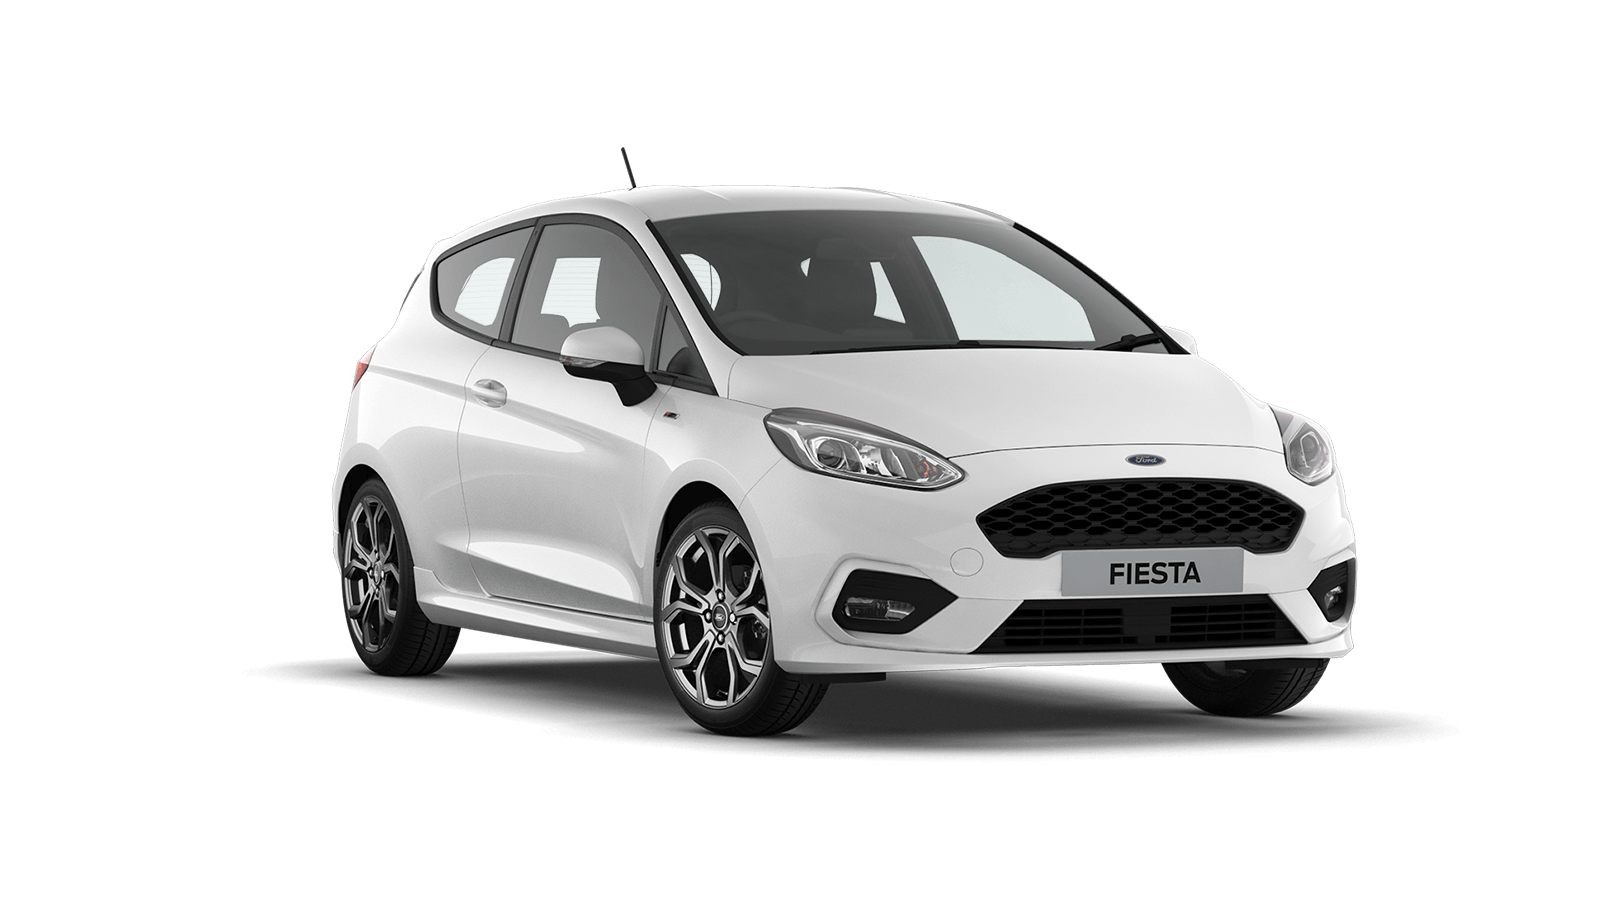 FIESTA ST-Line 1.0T EcoBoost 125PS